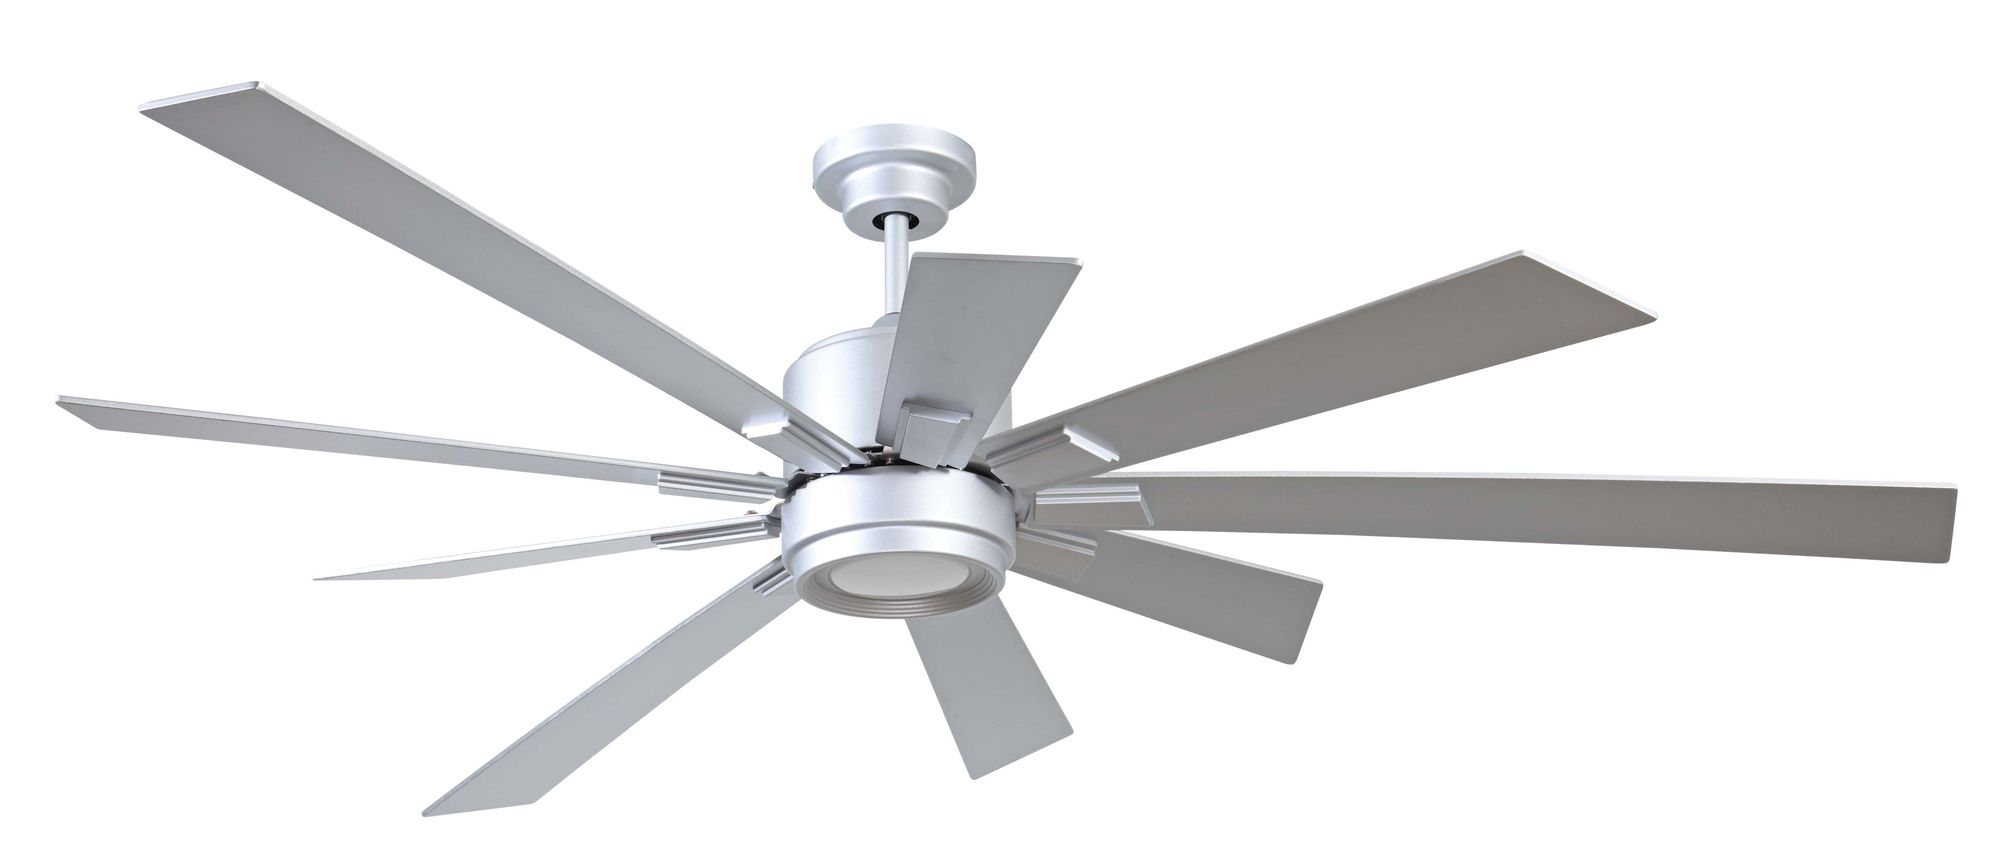 Katana ceiling fan with light is a shining example of what happens katana ceiling fan with light is a shining example of what happens when form follows function created with nine blades in various sizes and set against a aloadofball Images